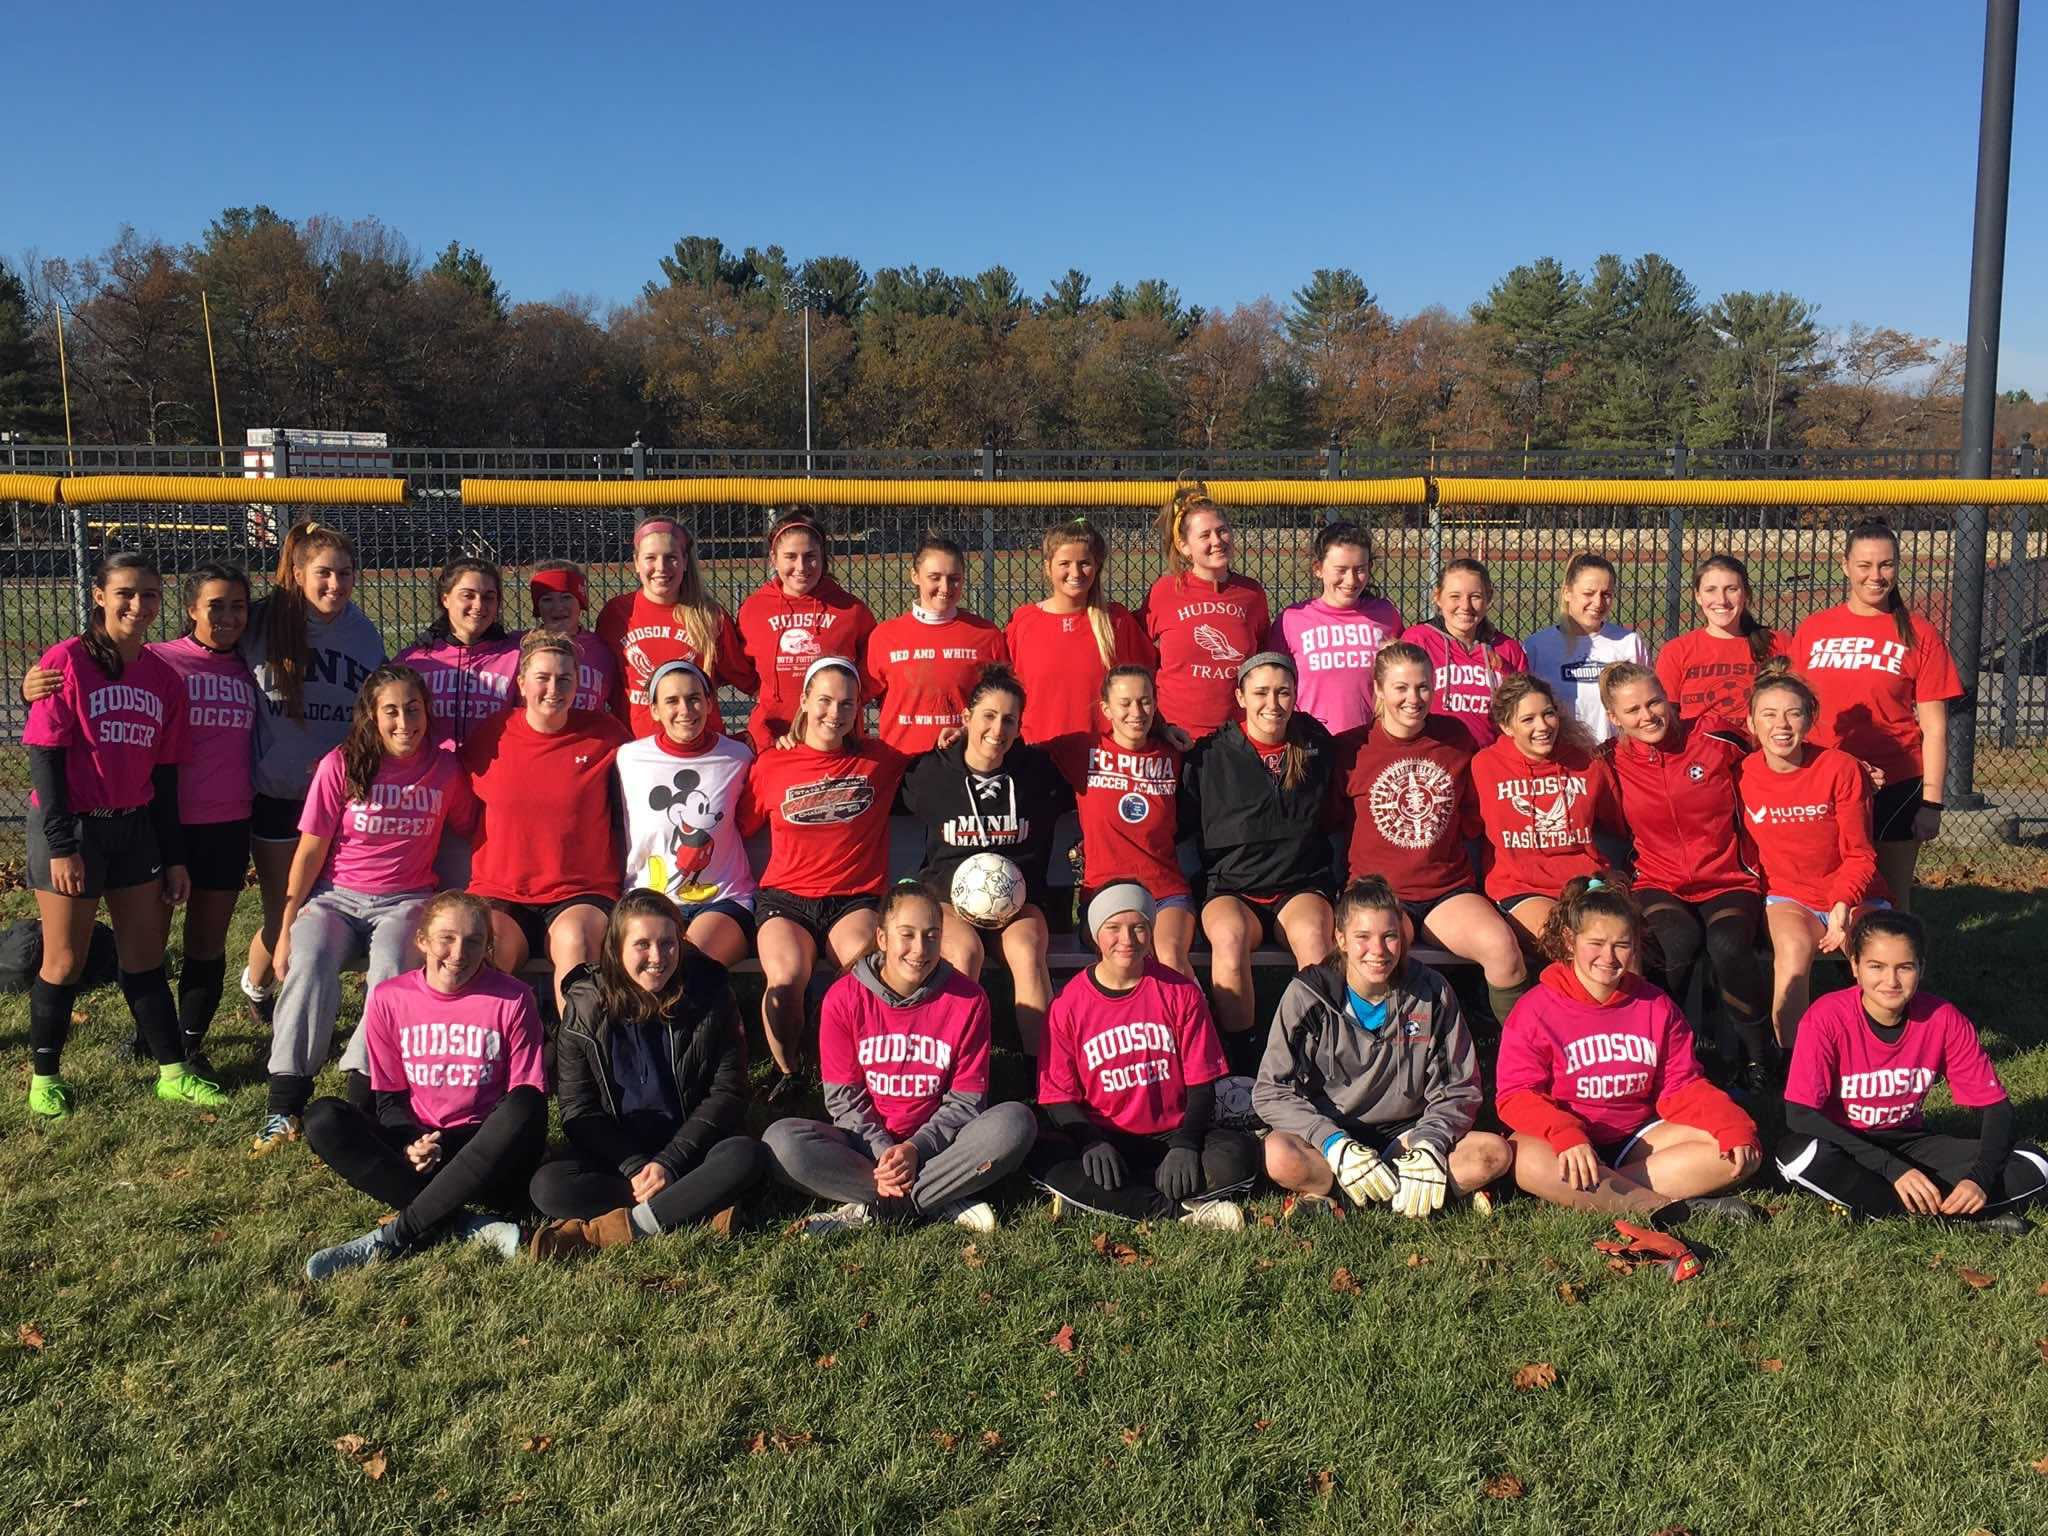 HHS soccer team and HHS alumni come together and take pictures with friends, teammates, and coaches.